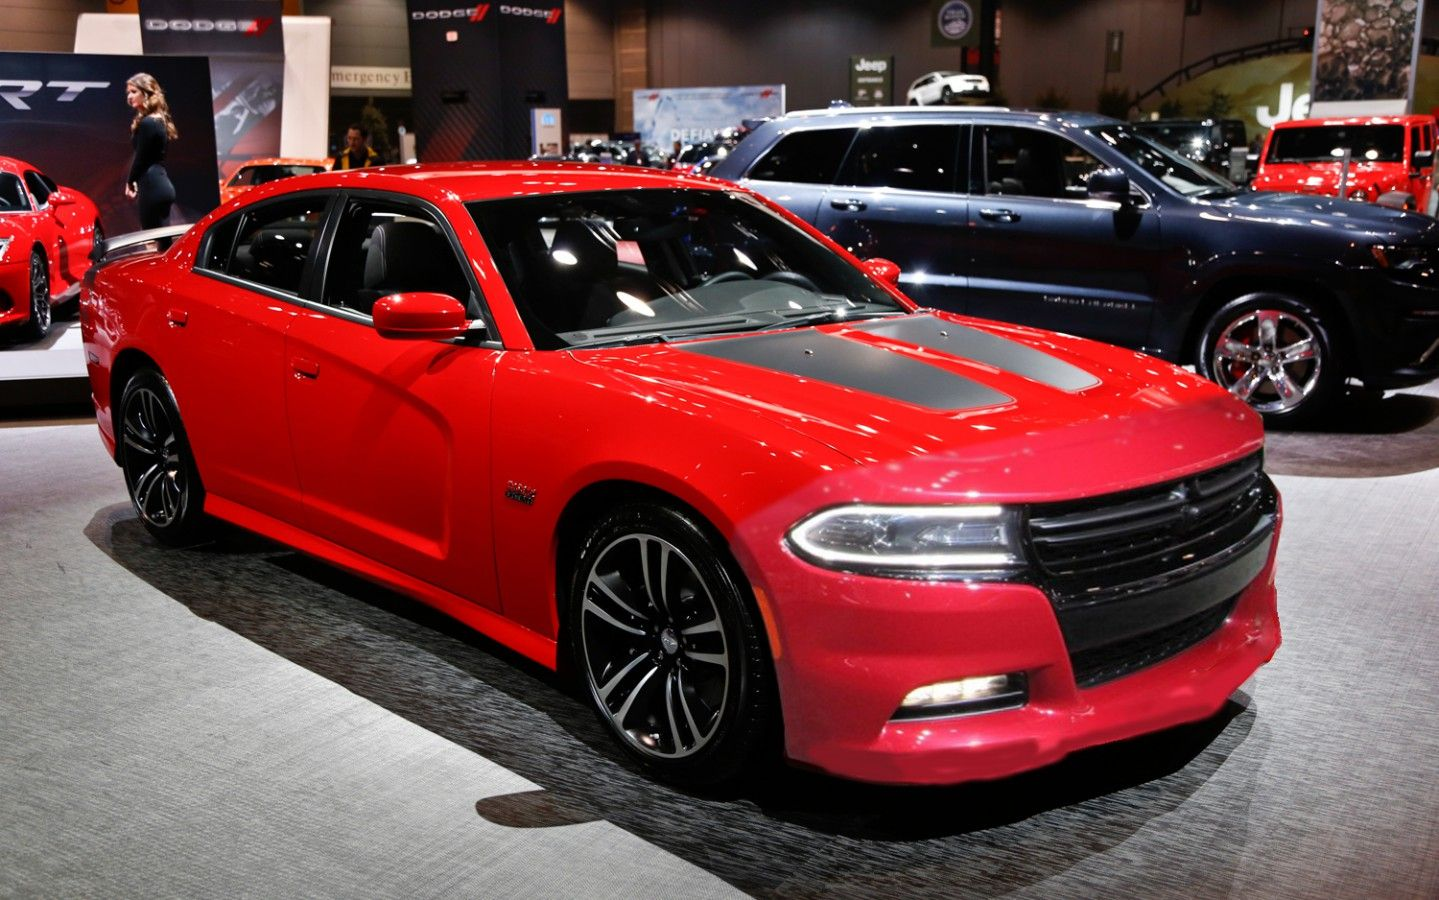 New 2014 dodge charger automotive photo picture desktop